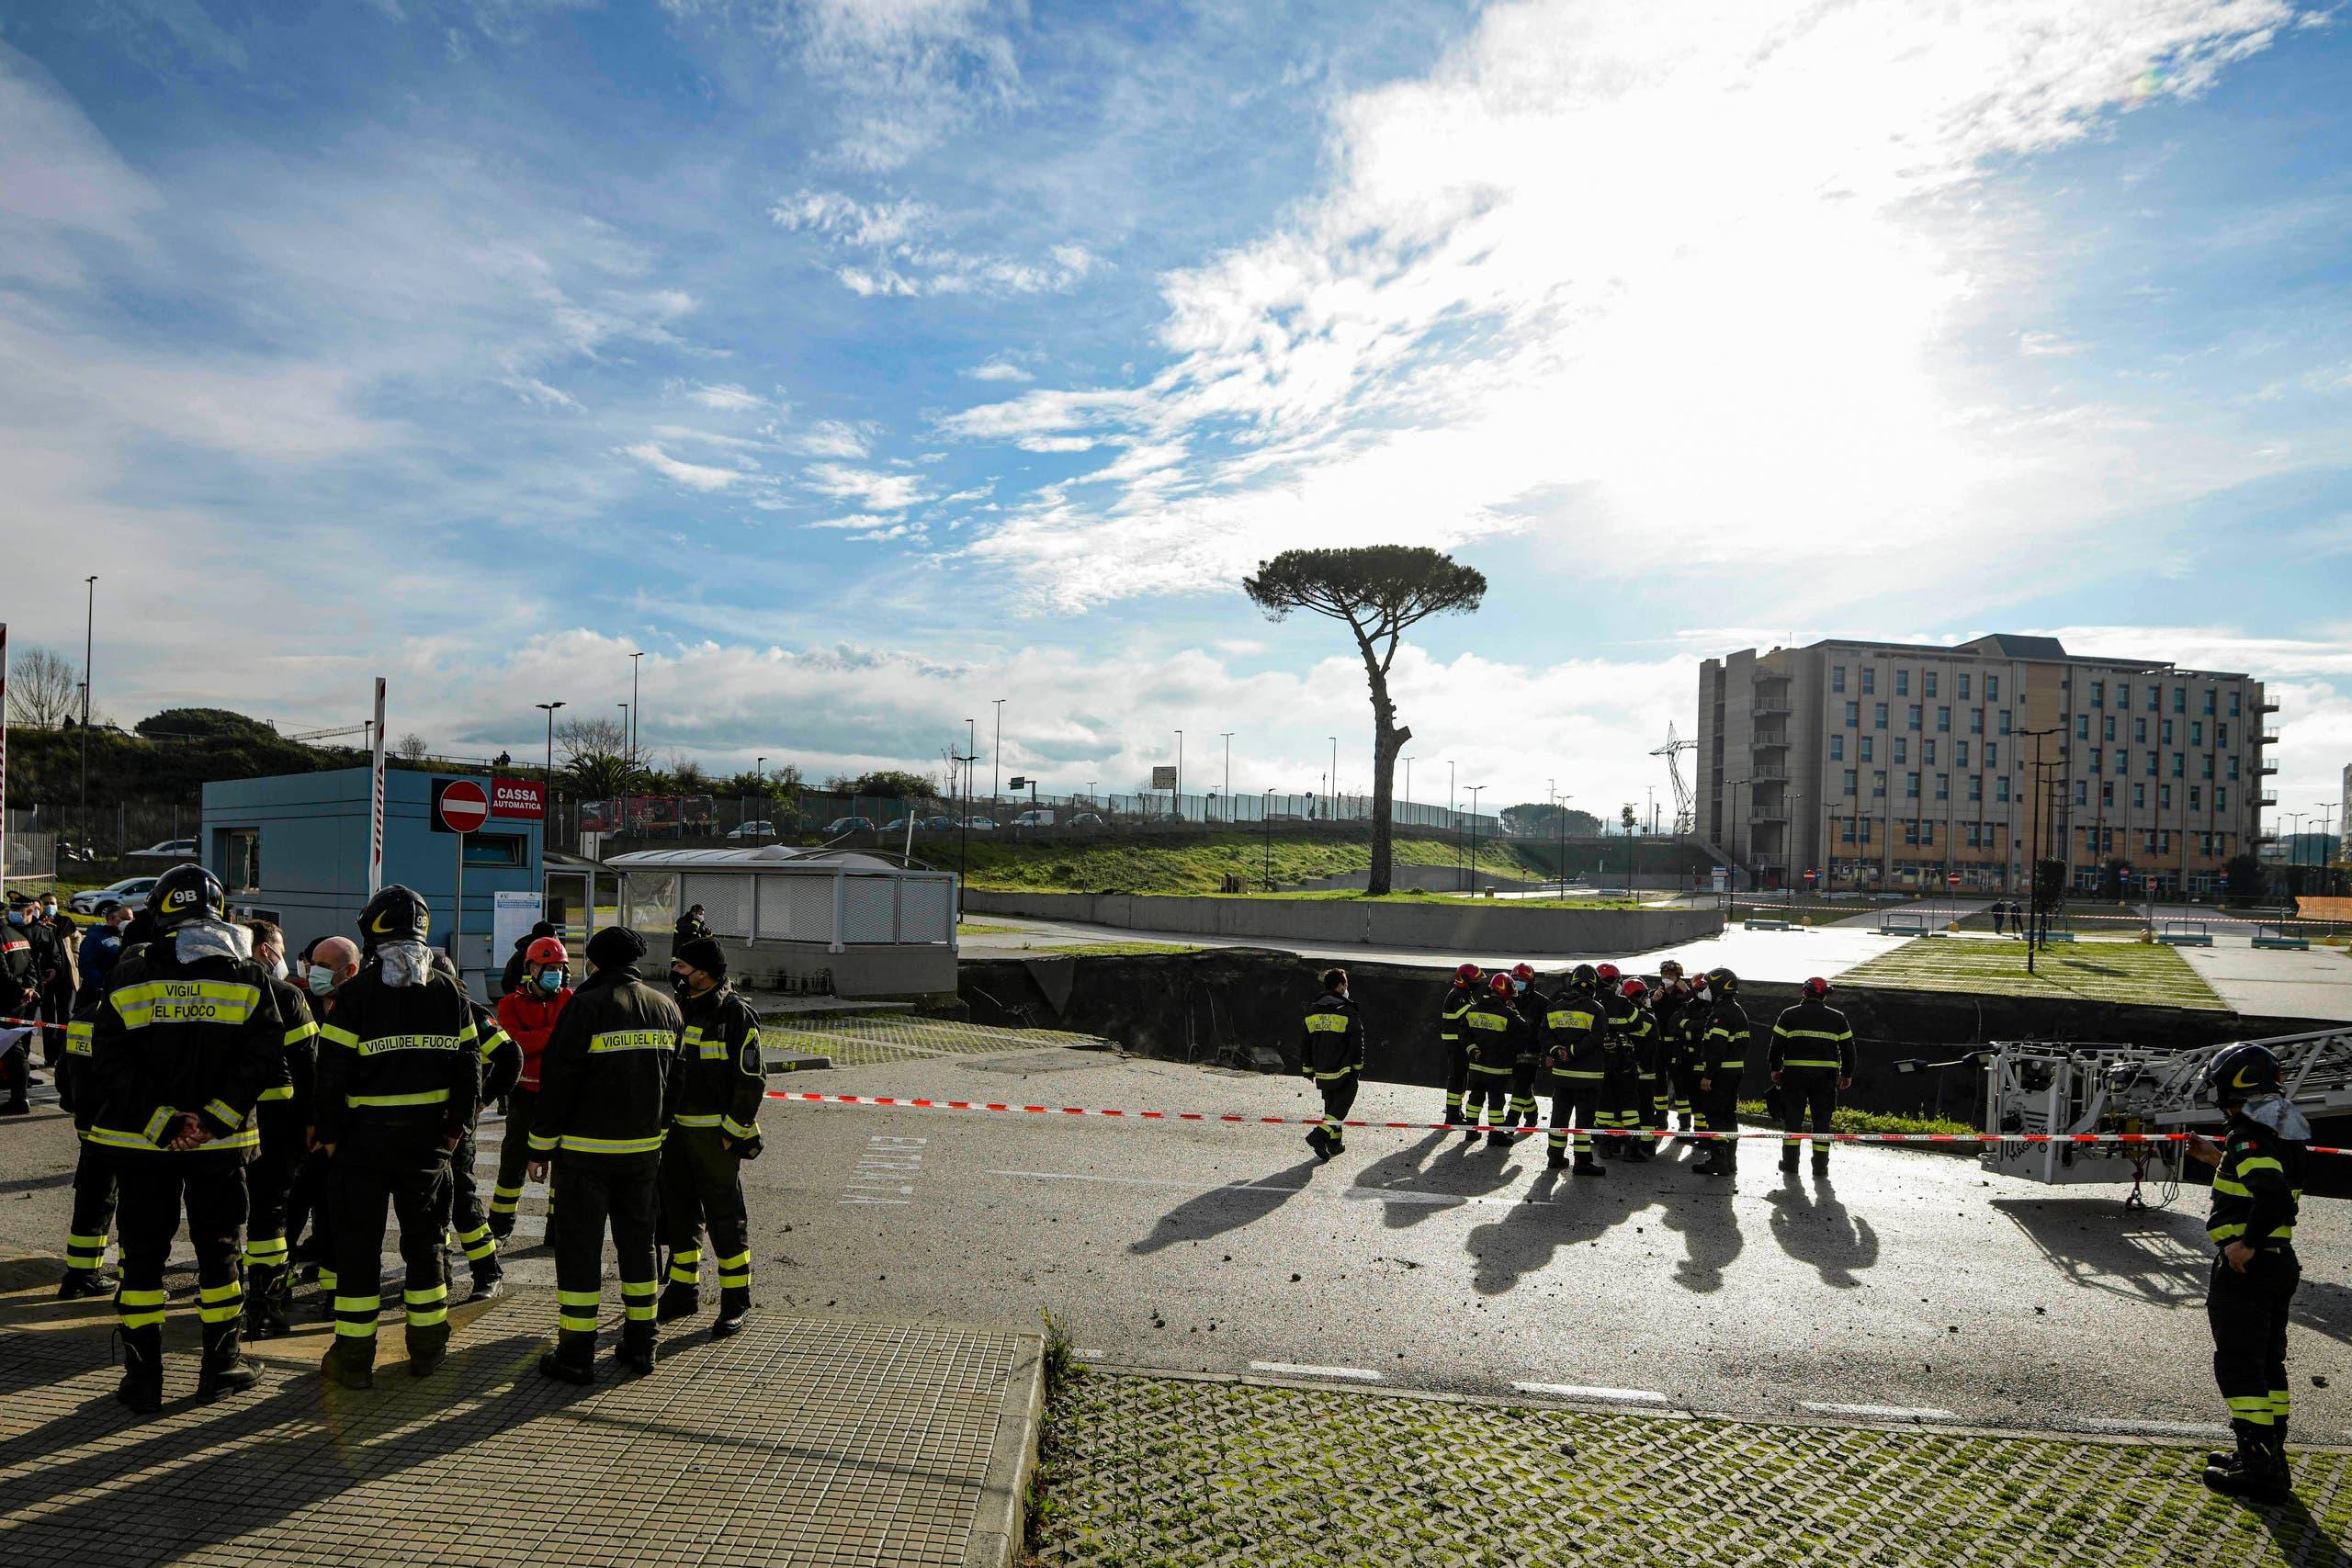 Firefighters stand on the border of the large sinkhole that opened overnight in the parking of Ospedale del Mare hospital in Naples, Italy, Friday, Jan. 8, 2021. A giant sinkhole opened Friday in the parking lot of a Naples hospital, forcing the temporary closure of a nearby residence for recovering coronavirus patients because the electricity was cut. (Alessandro Pone/LaPresse via AP)